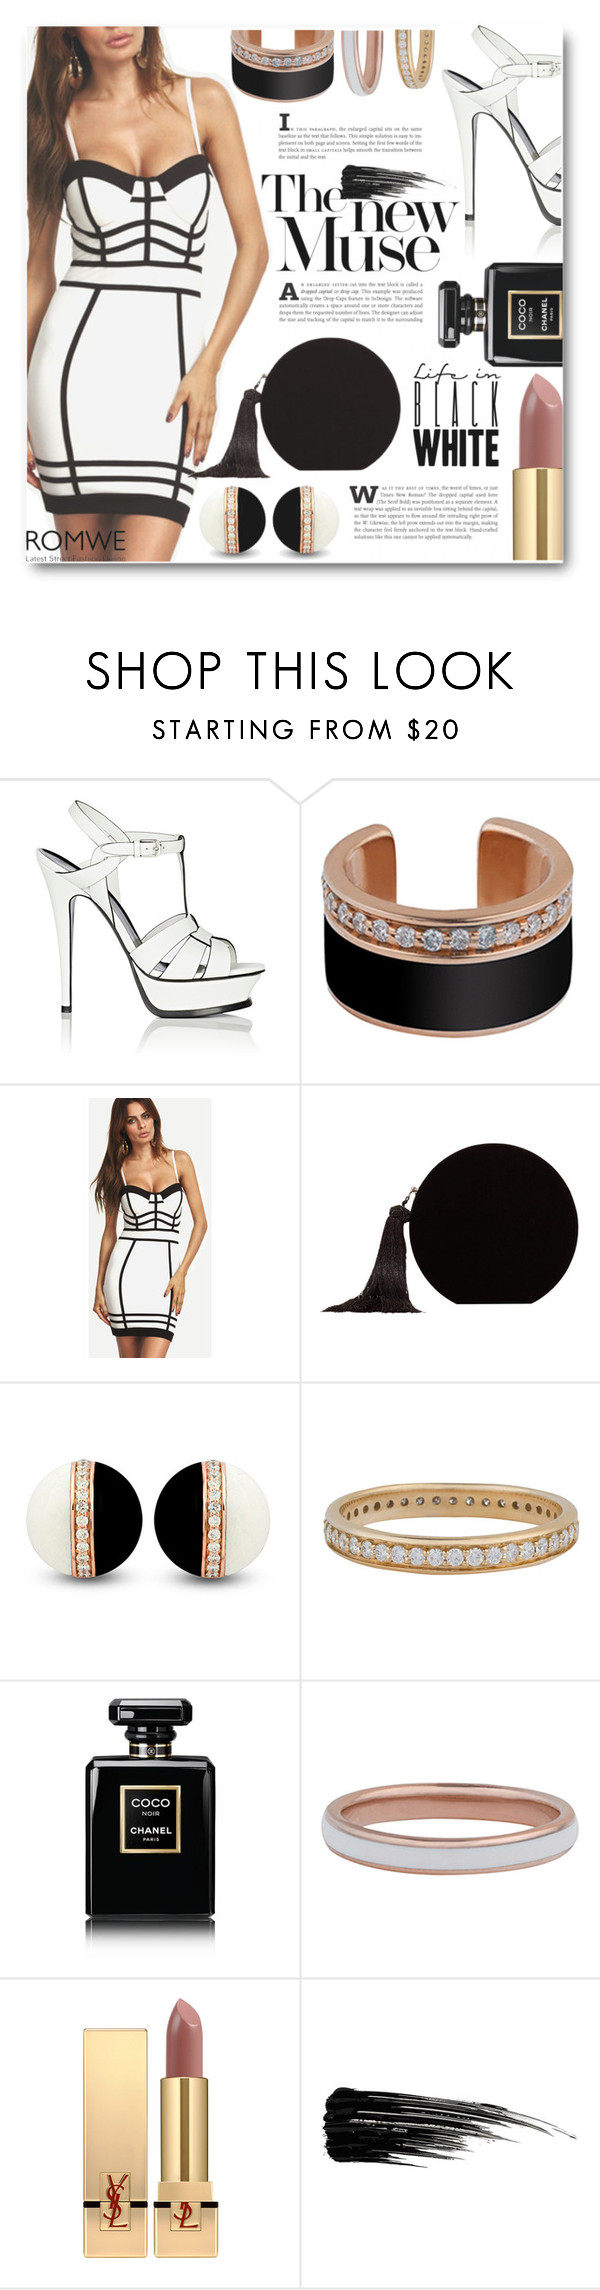 """Hold up, they don't love you like I love you"" by sunshineb ❤ liked on Polyvore featuring Yves Saint Laurent, MANGO, Chanel, Urban Decay, dress, blackandwhite and romwe"